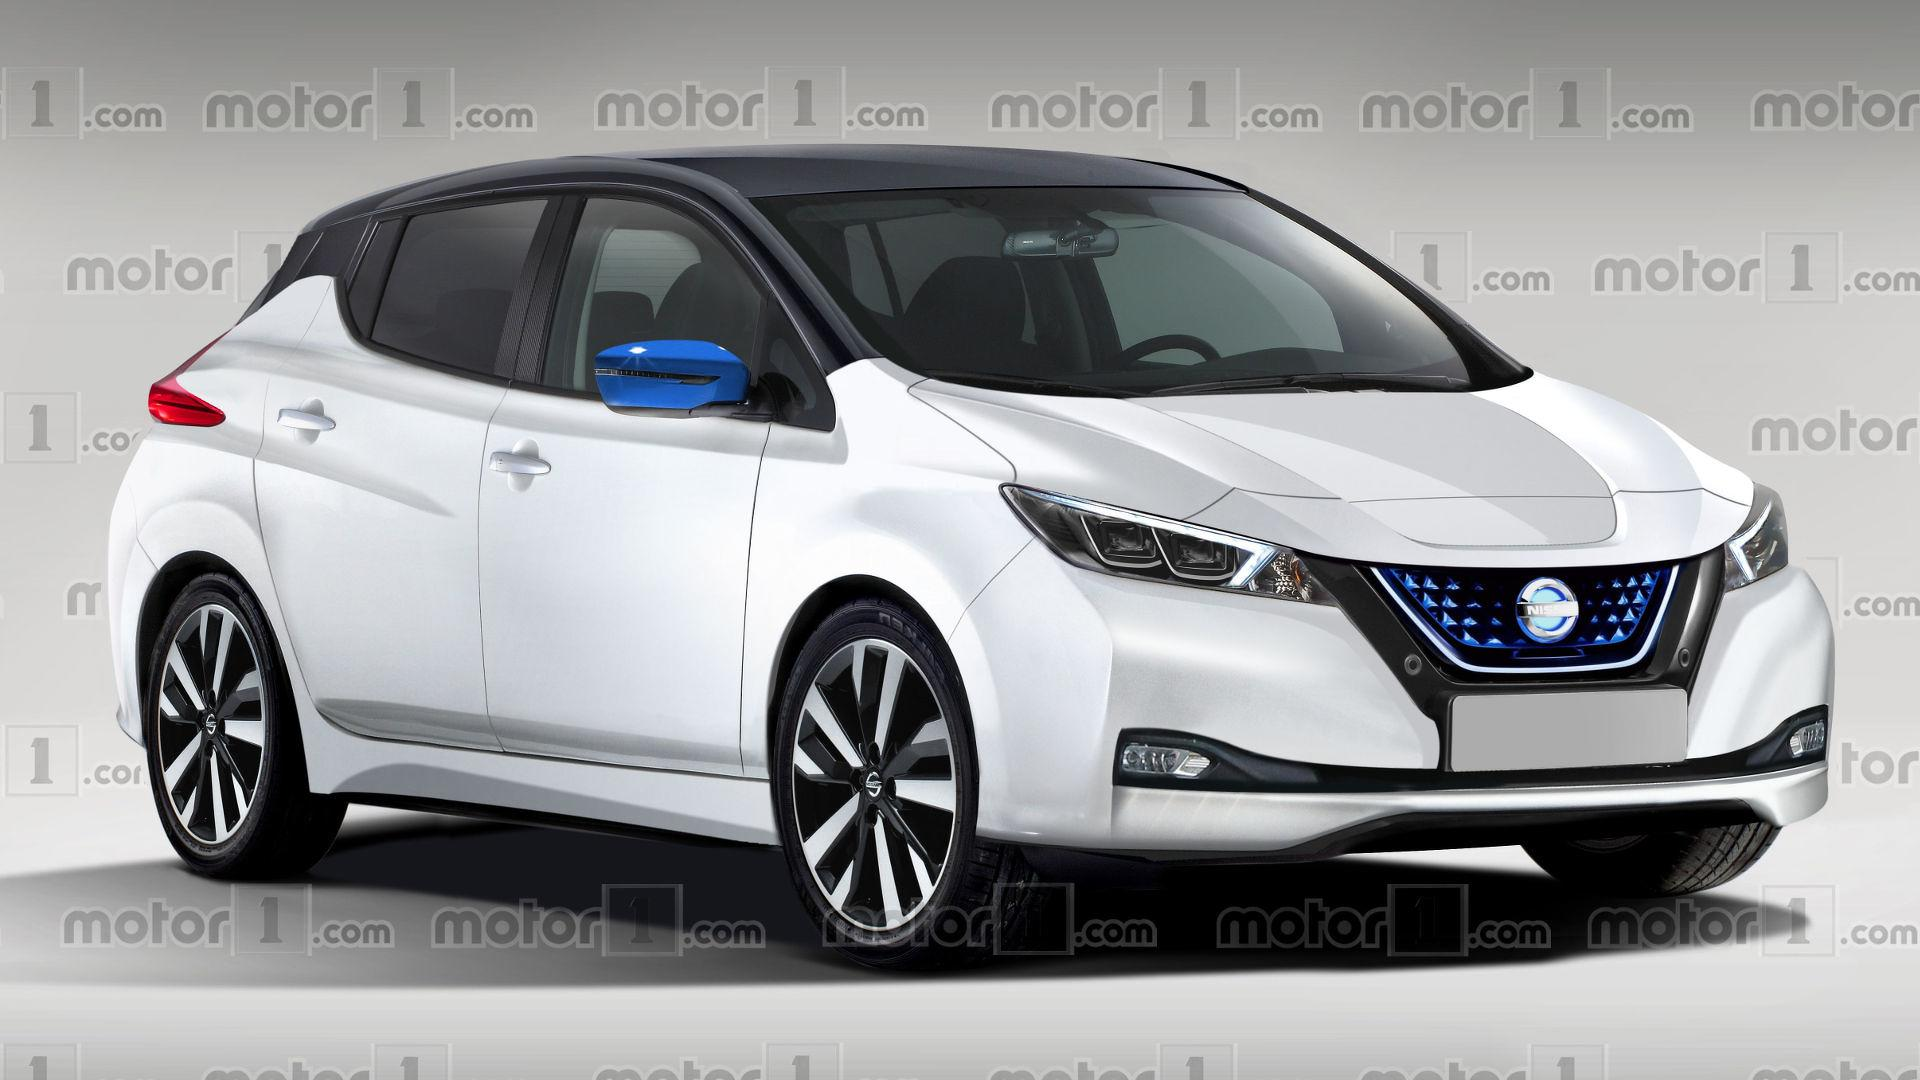 2018 nissan leaf render previews massively improved design. Black Bedroom Furniture Sets. Home Design Ideas